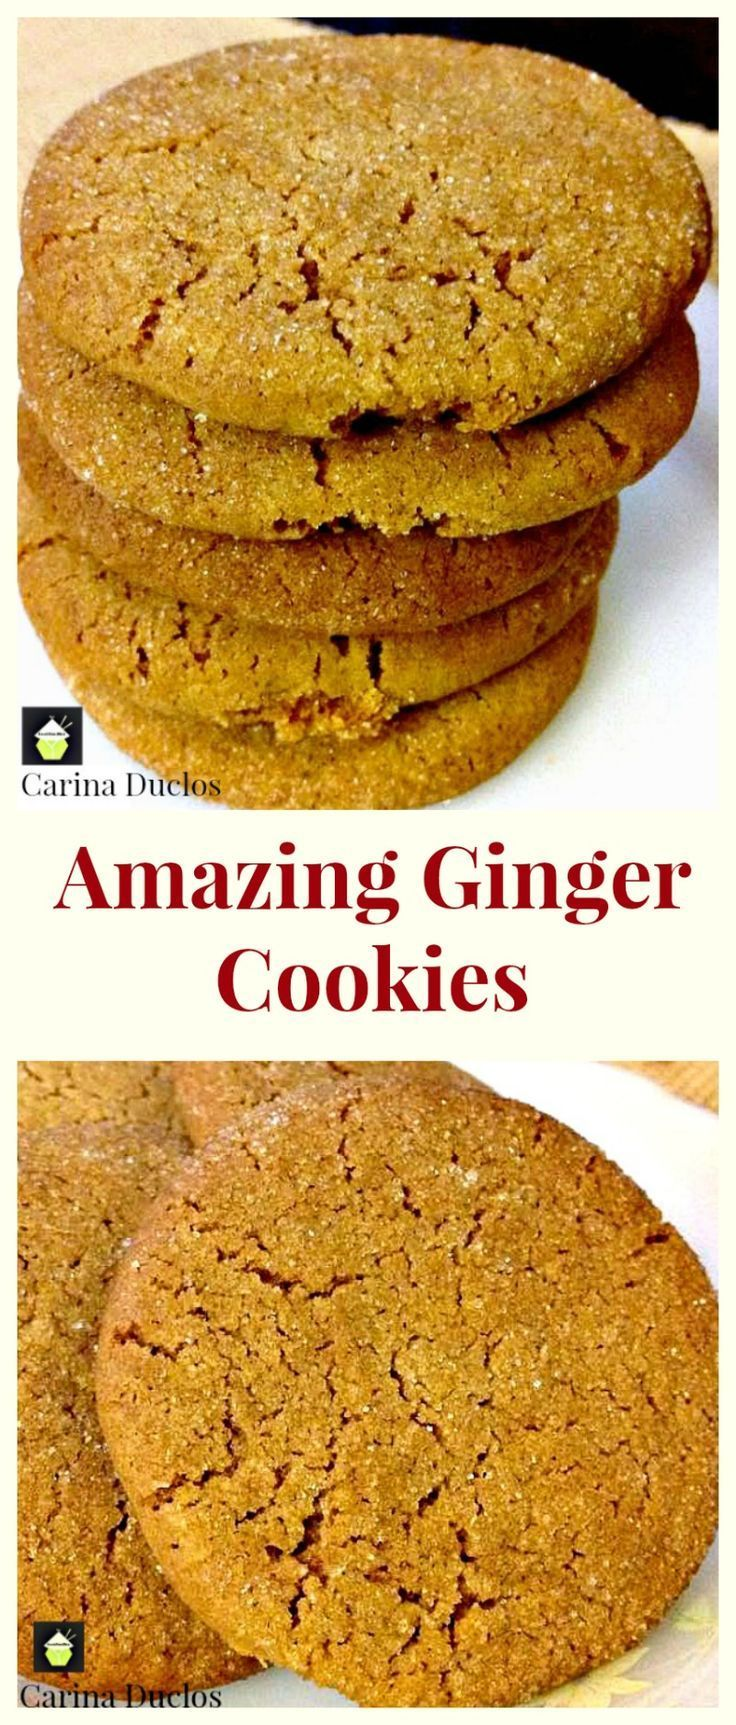 Amazing Ginger Cookies! Easy recipe and perfect with a cup of tea or glass of cold milk. Ahhhhh!